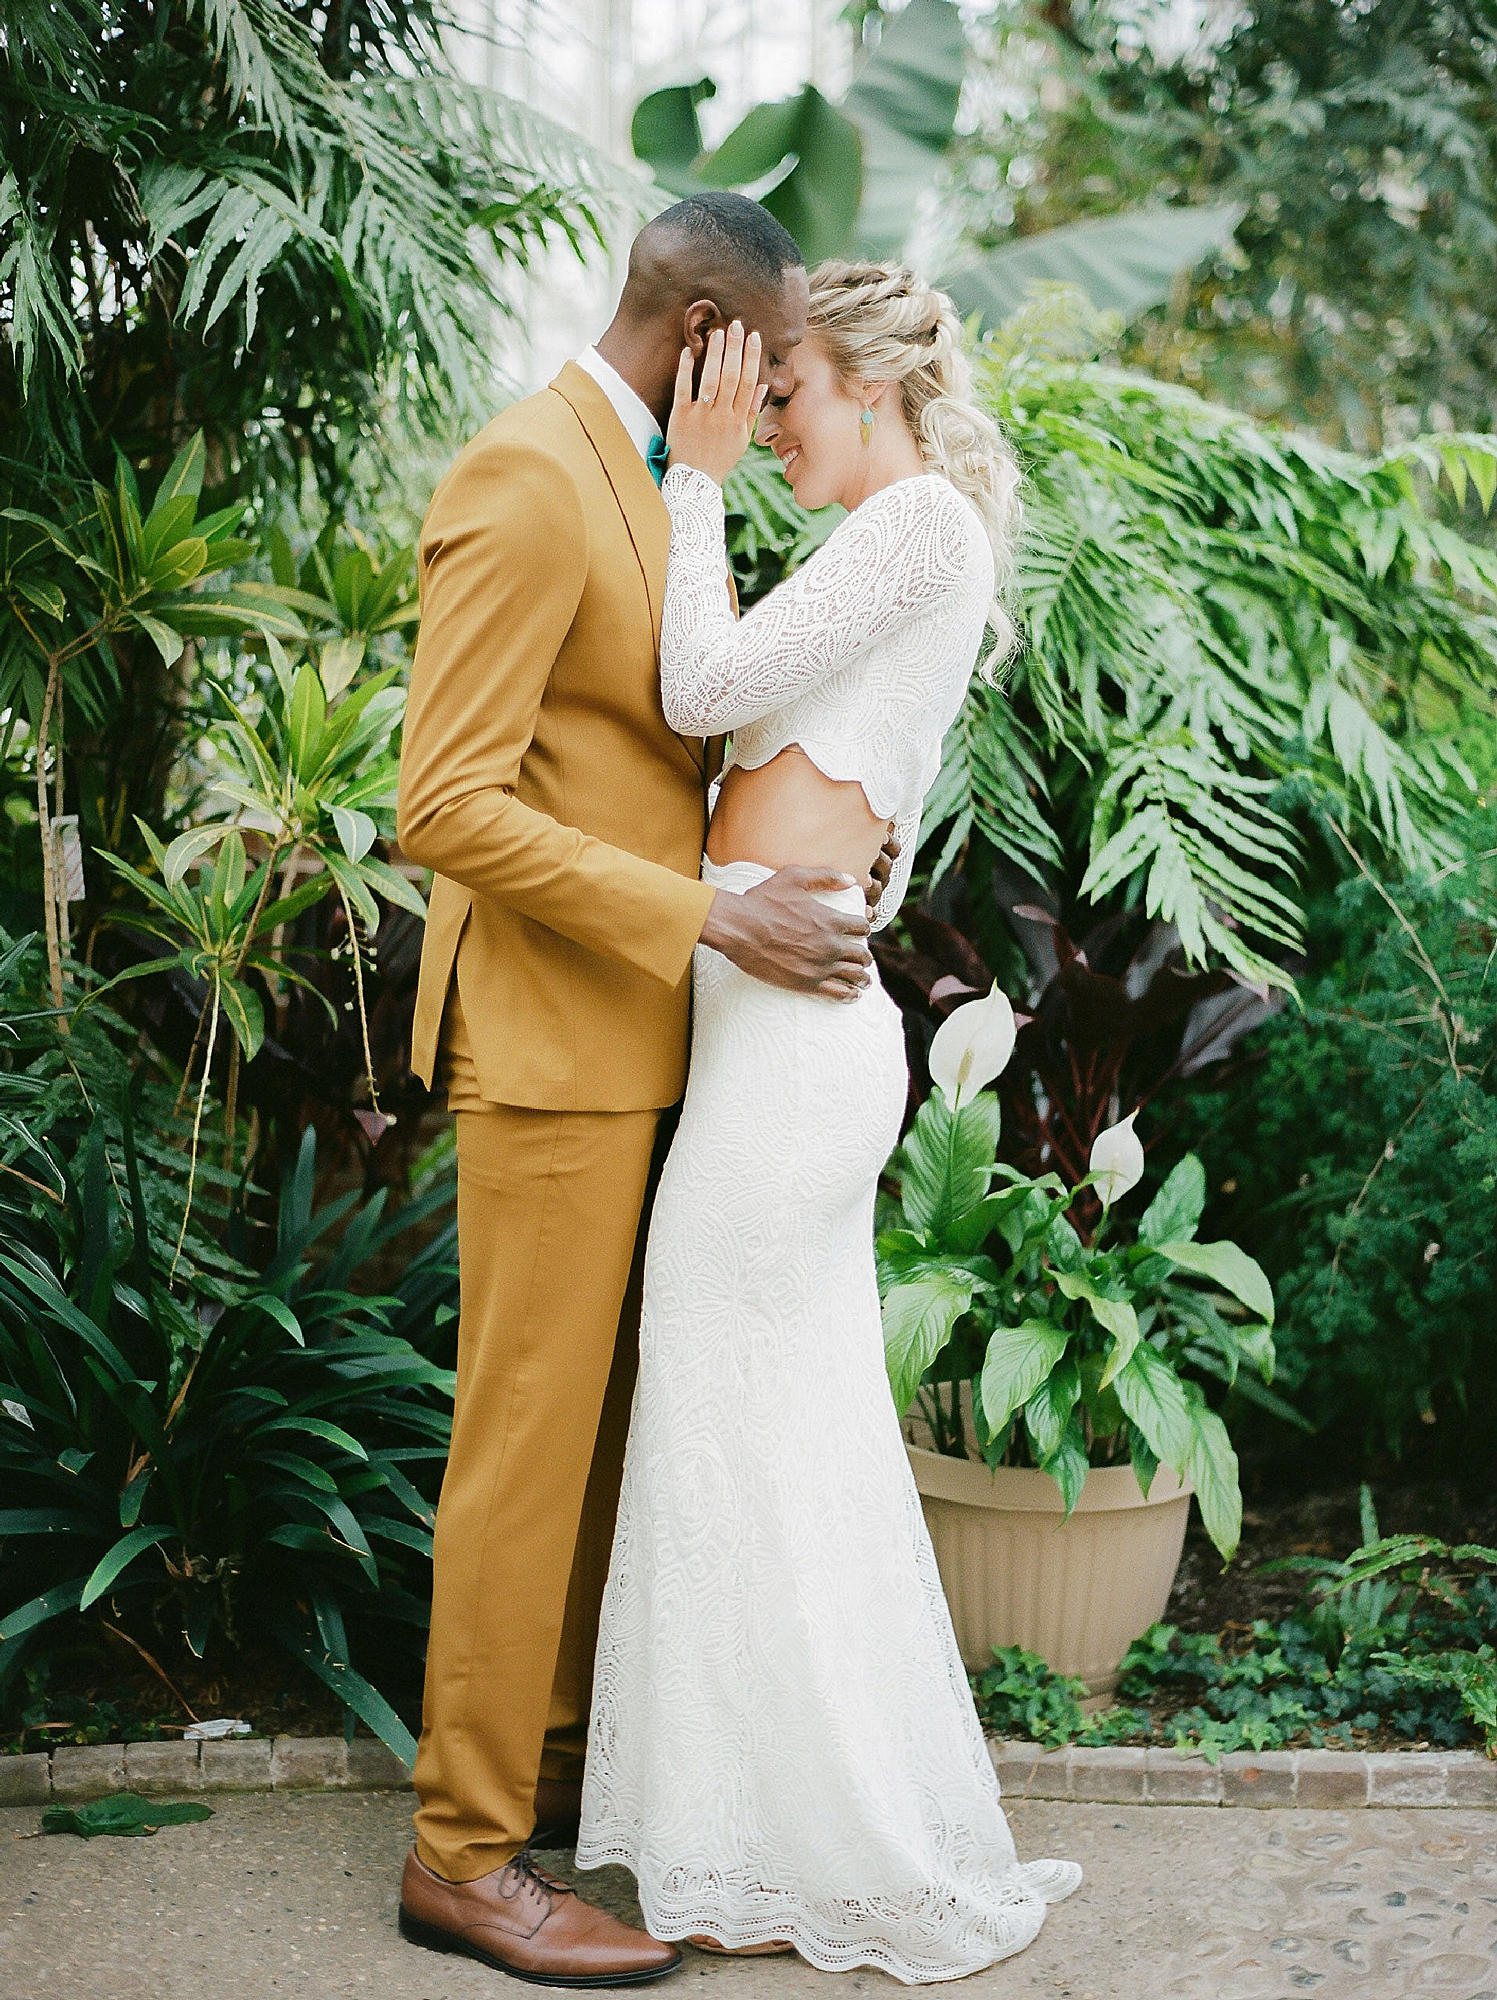 Colorful and Vibrant Wedding Photography at Fairmount Horticultural Center by Magdalena Studios 0048